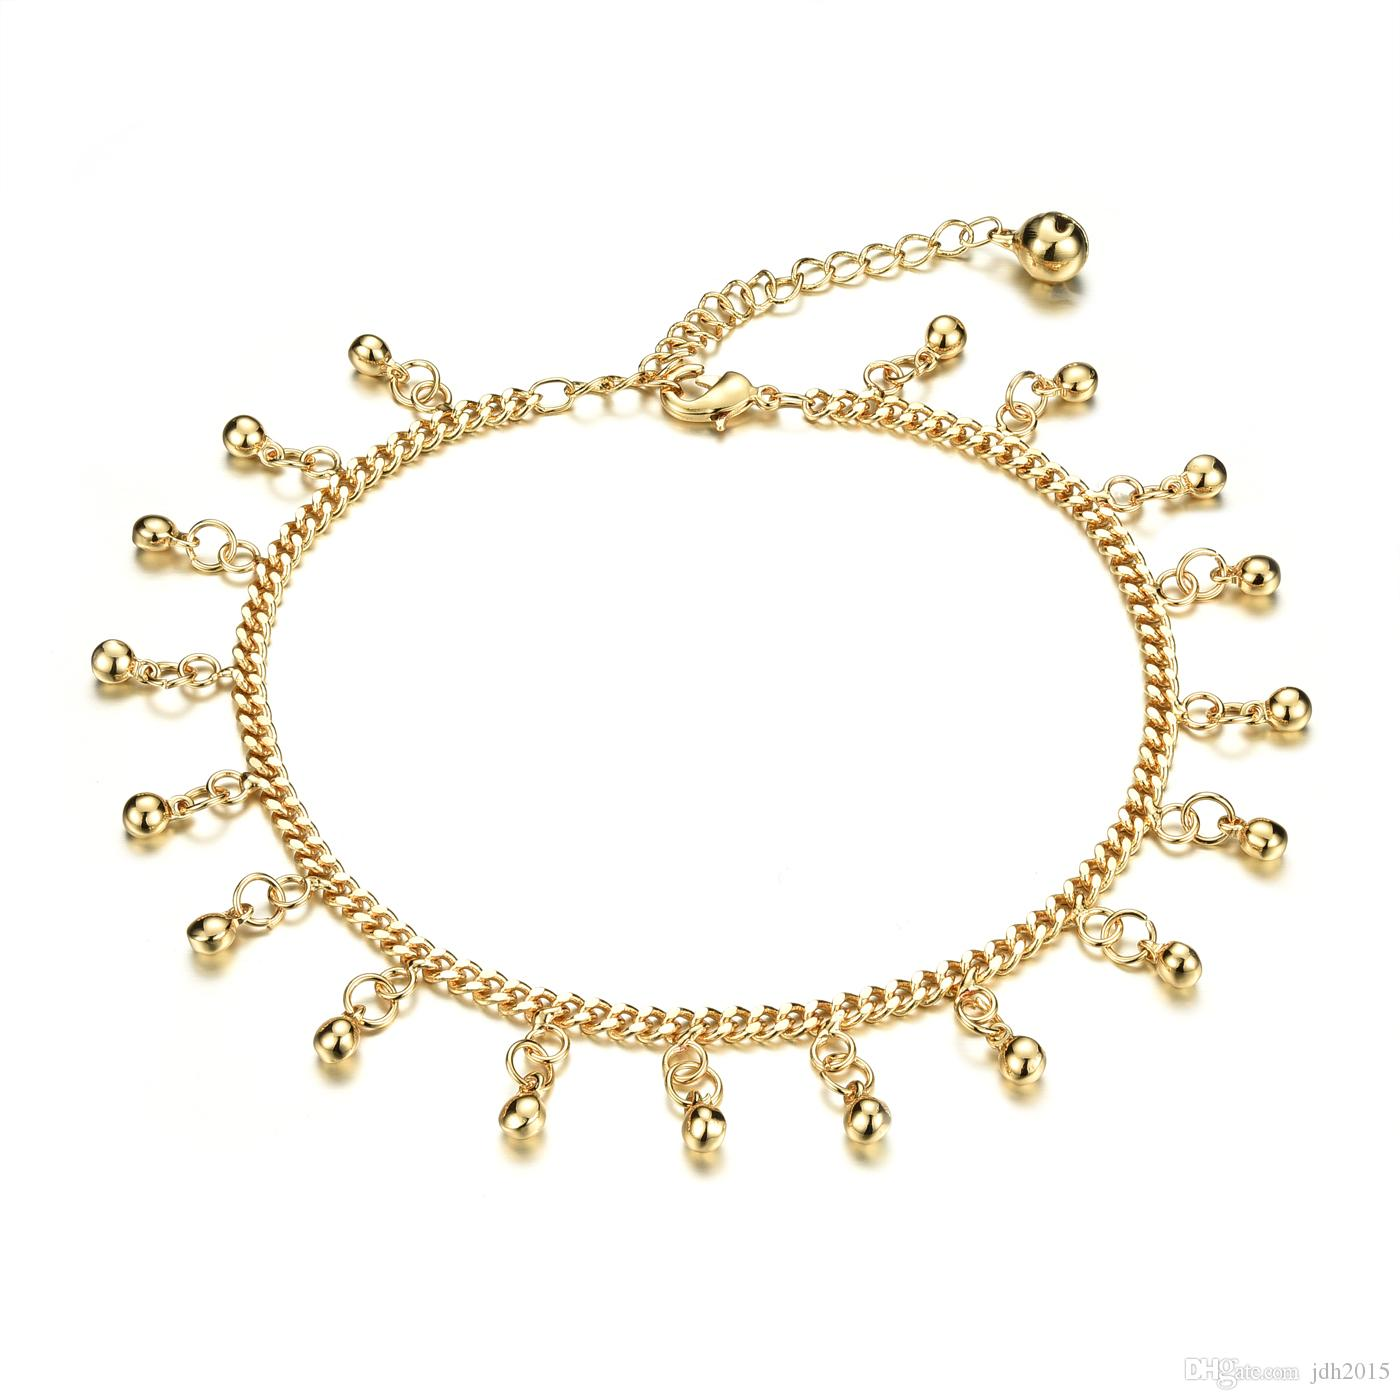 Gold-Toned Gypsy Bohemian Belly Dance Beads Tassel Chain Anklet